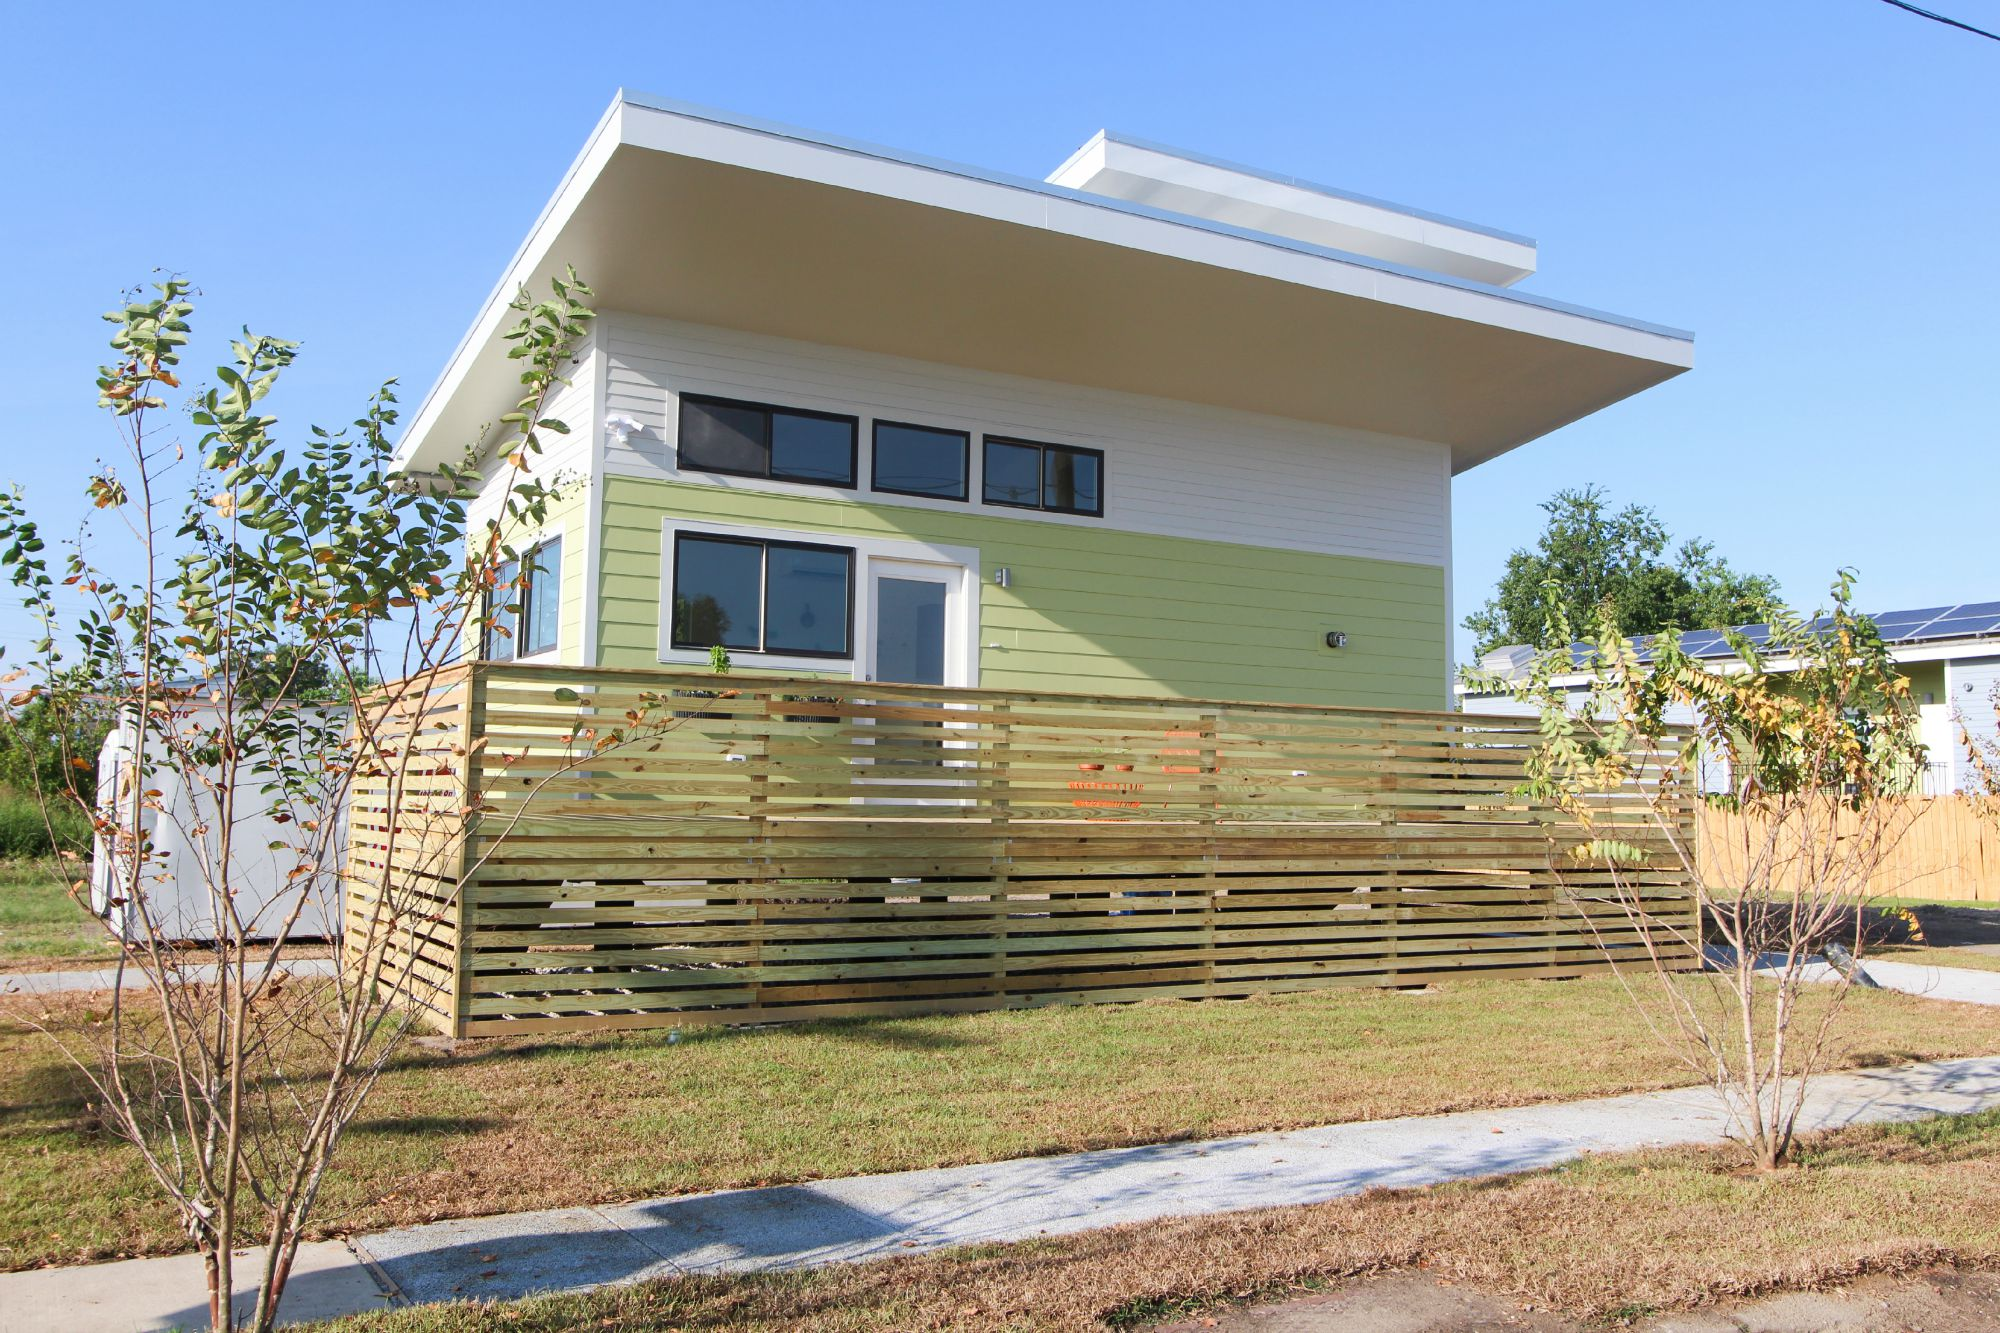 New Orleans Tiny Houses - Curbed New Orleans on passive solar roof designs, mobile home roof designs, sustainable roof designs, small home roof designs, shelter roof designs, modern roof designs, architecture roof designs,